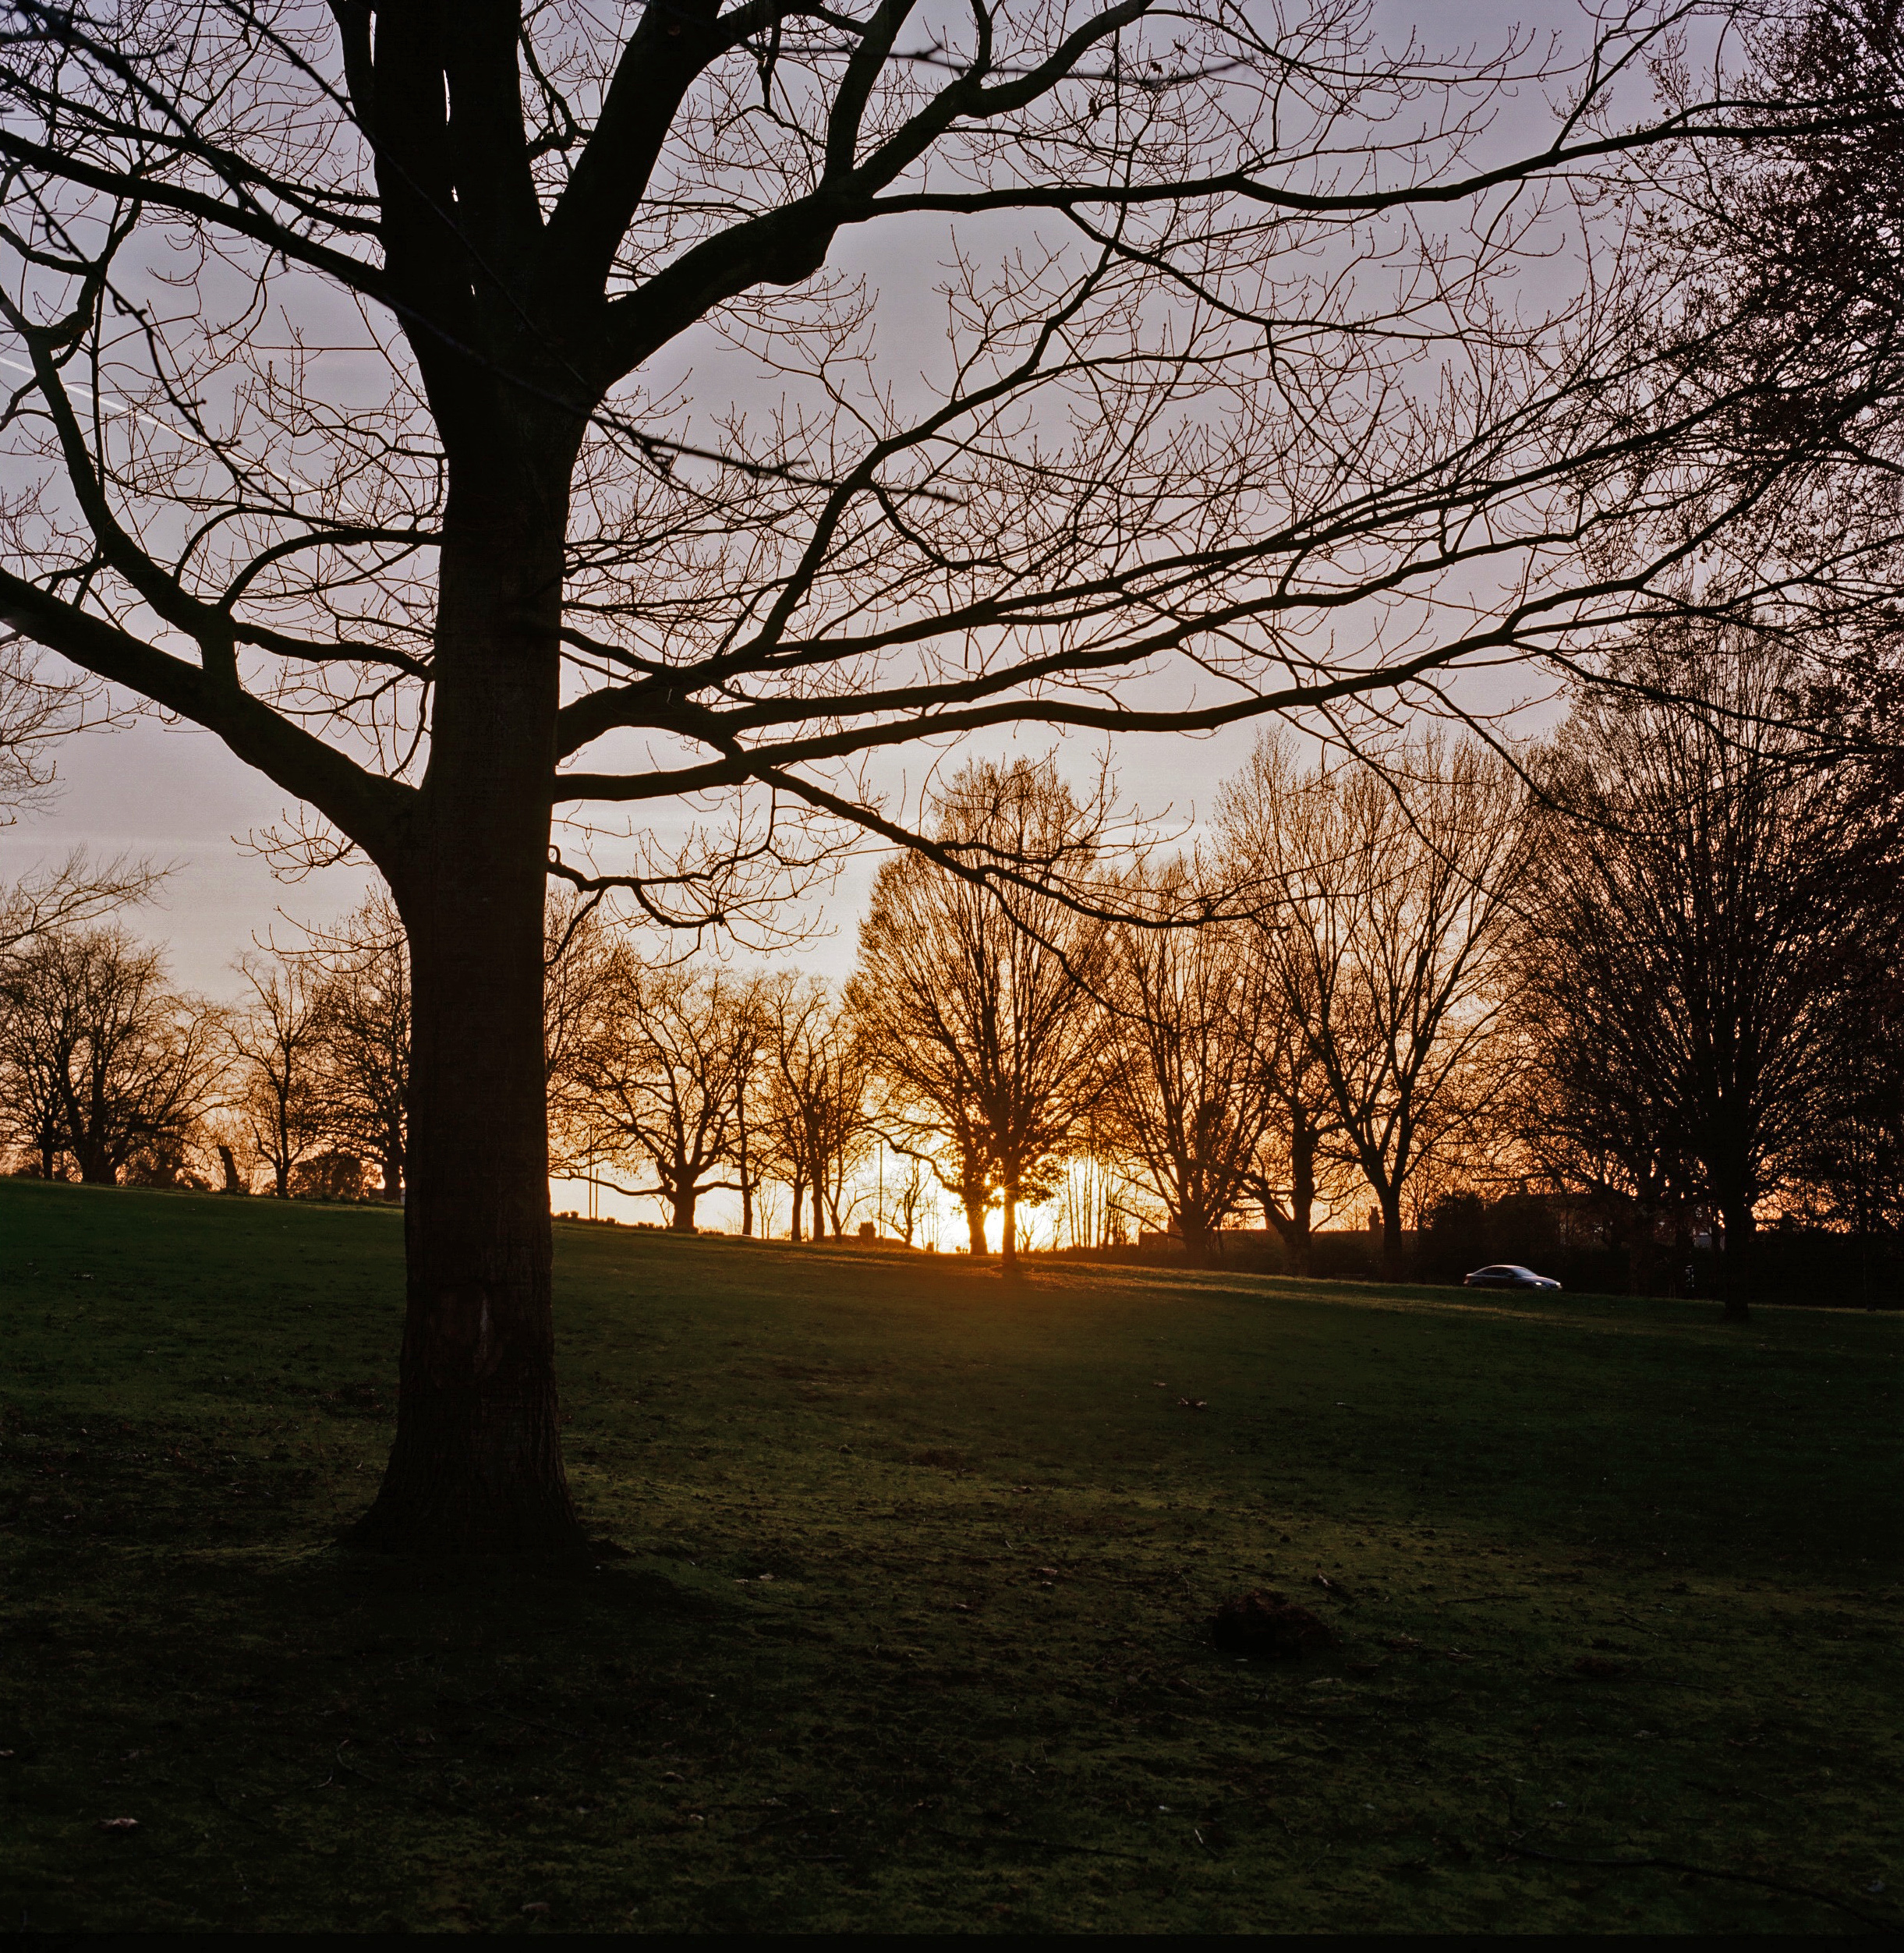 Hasselblad: A sunset shot in Finsbury Park.